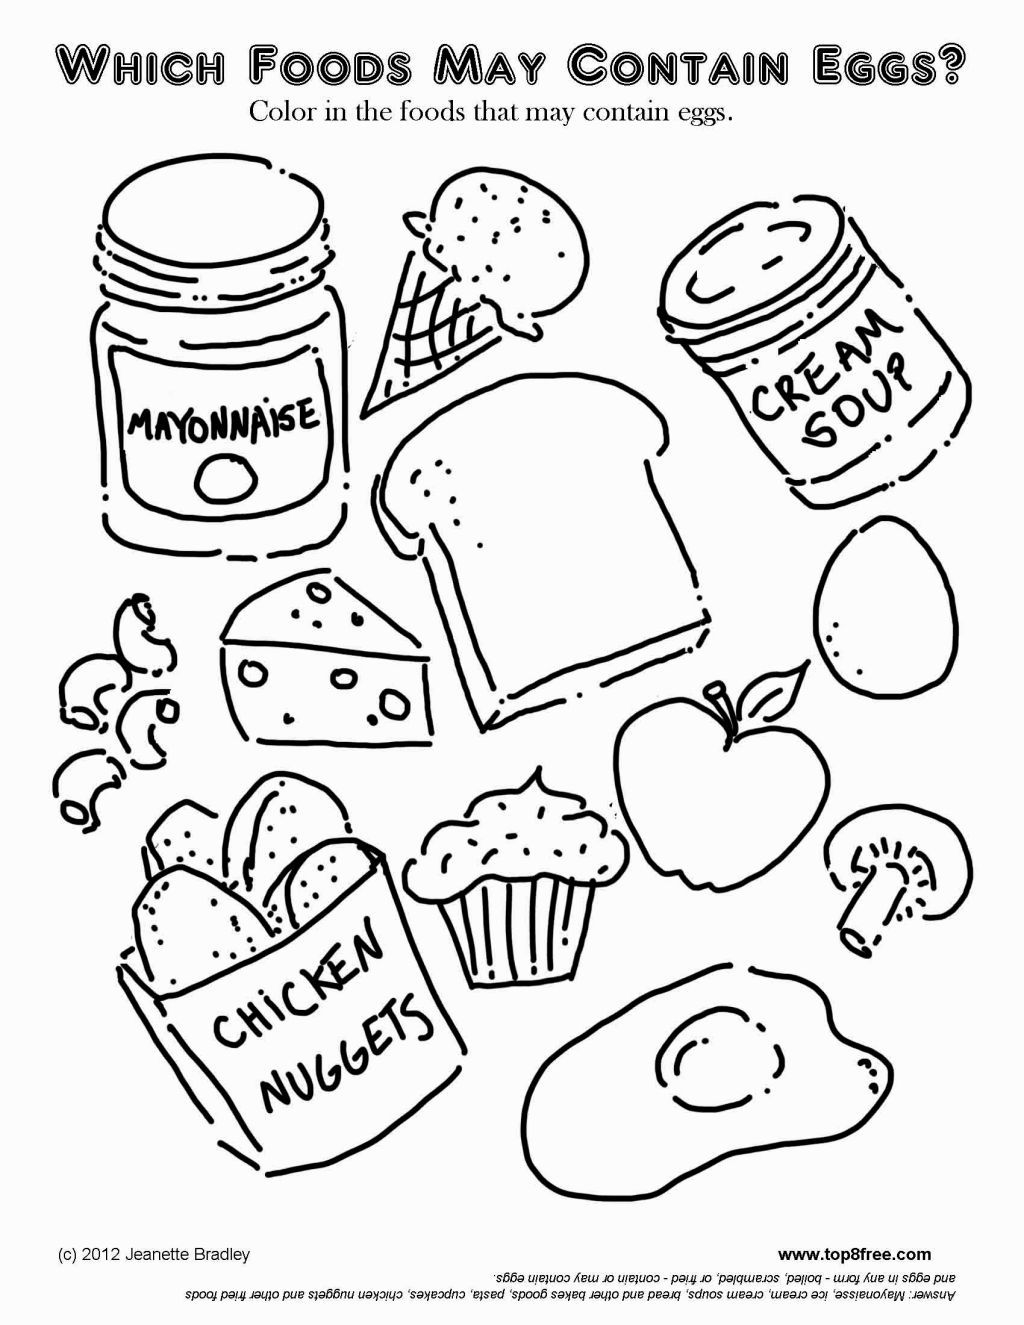 Healthy Food Coloring Pages Healthy Foods Coloring Sheets Coloring Pages Davemelillo Com Food Coloring Pages Free Kids Coloring Pages Black Food Coloring